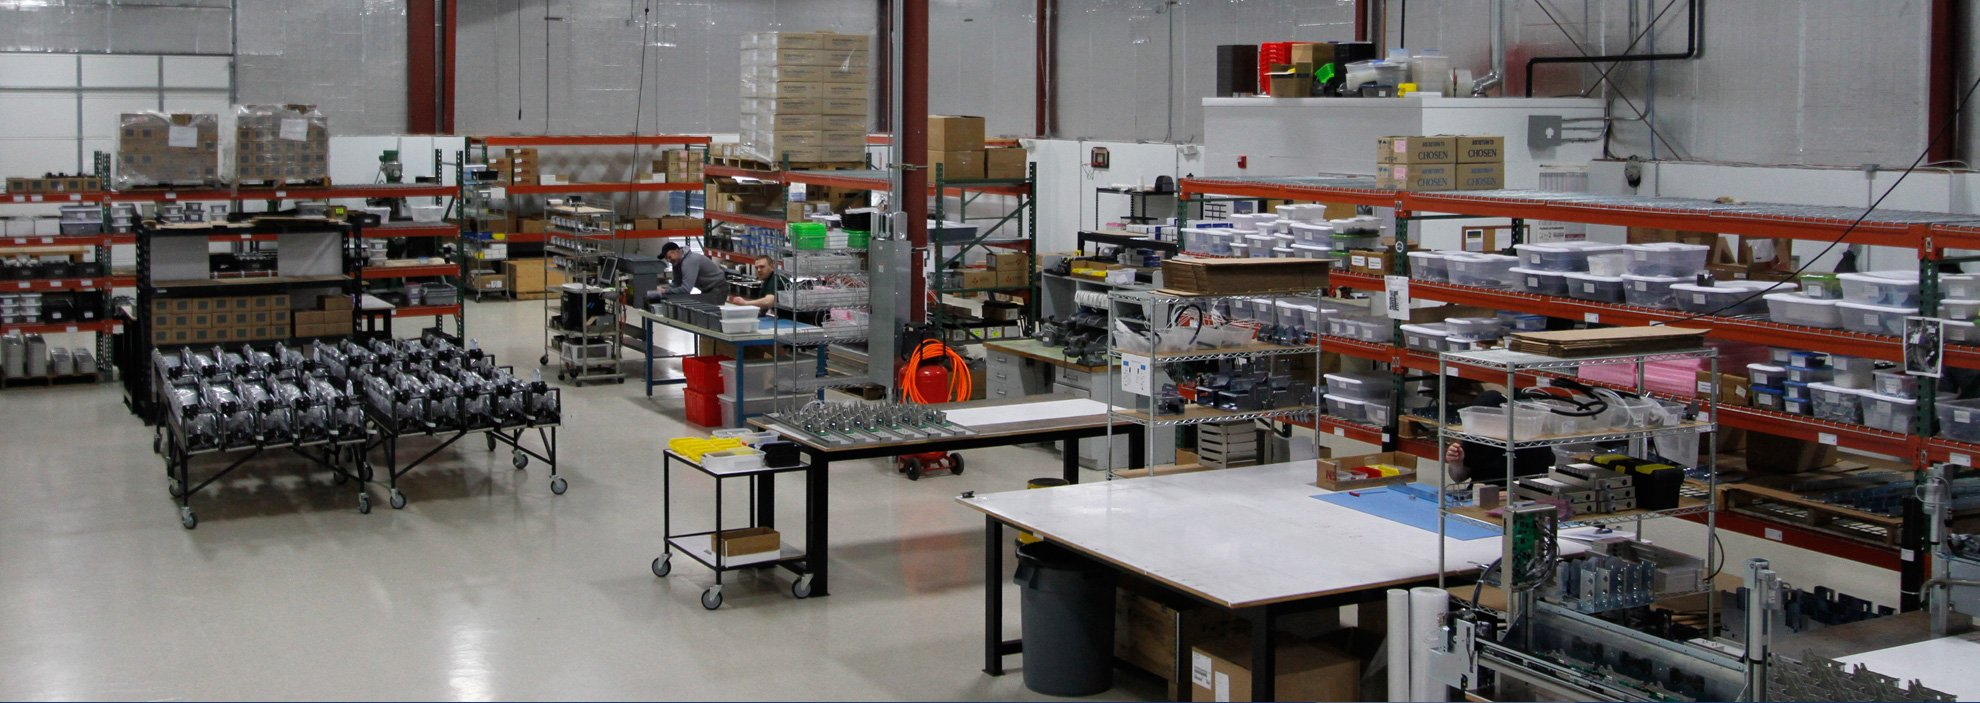 BDE Manufacturing and Assembly Section